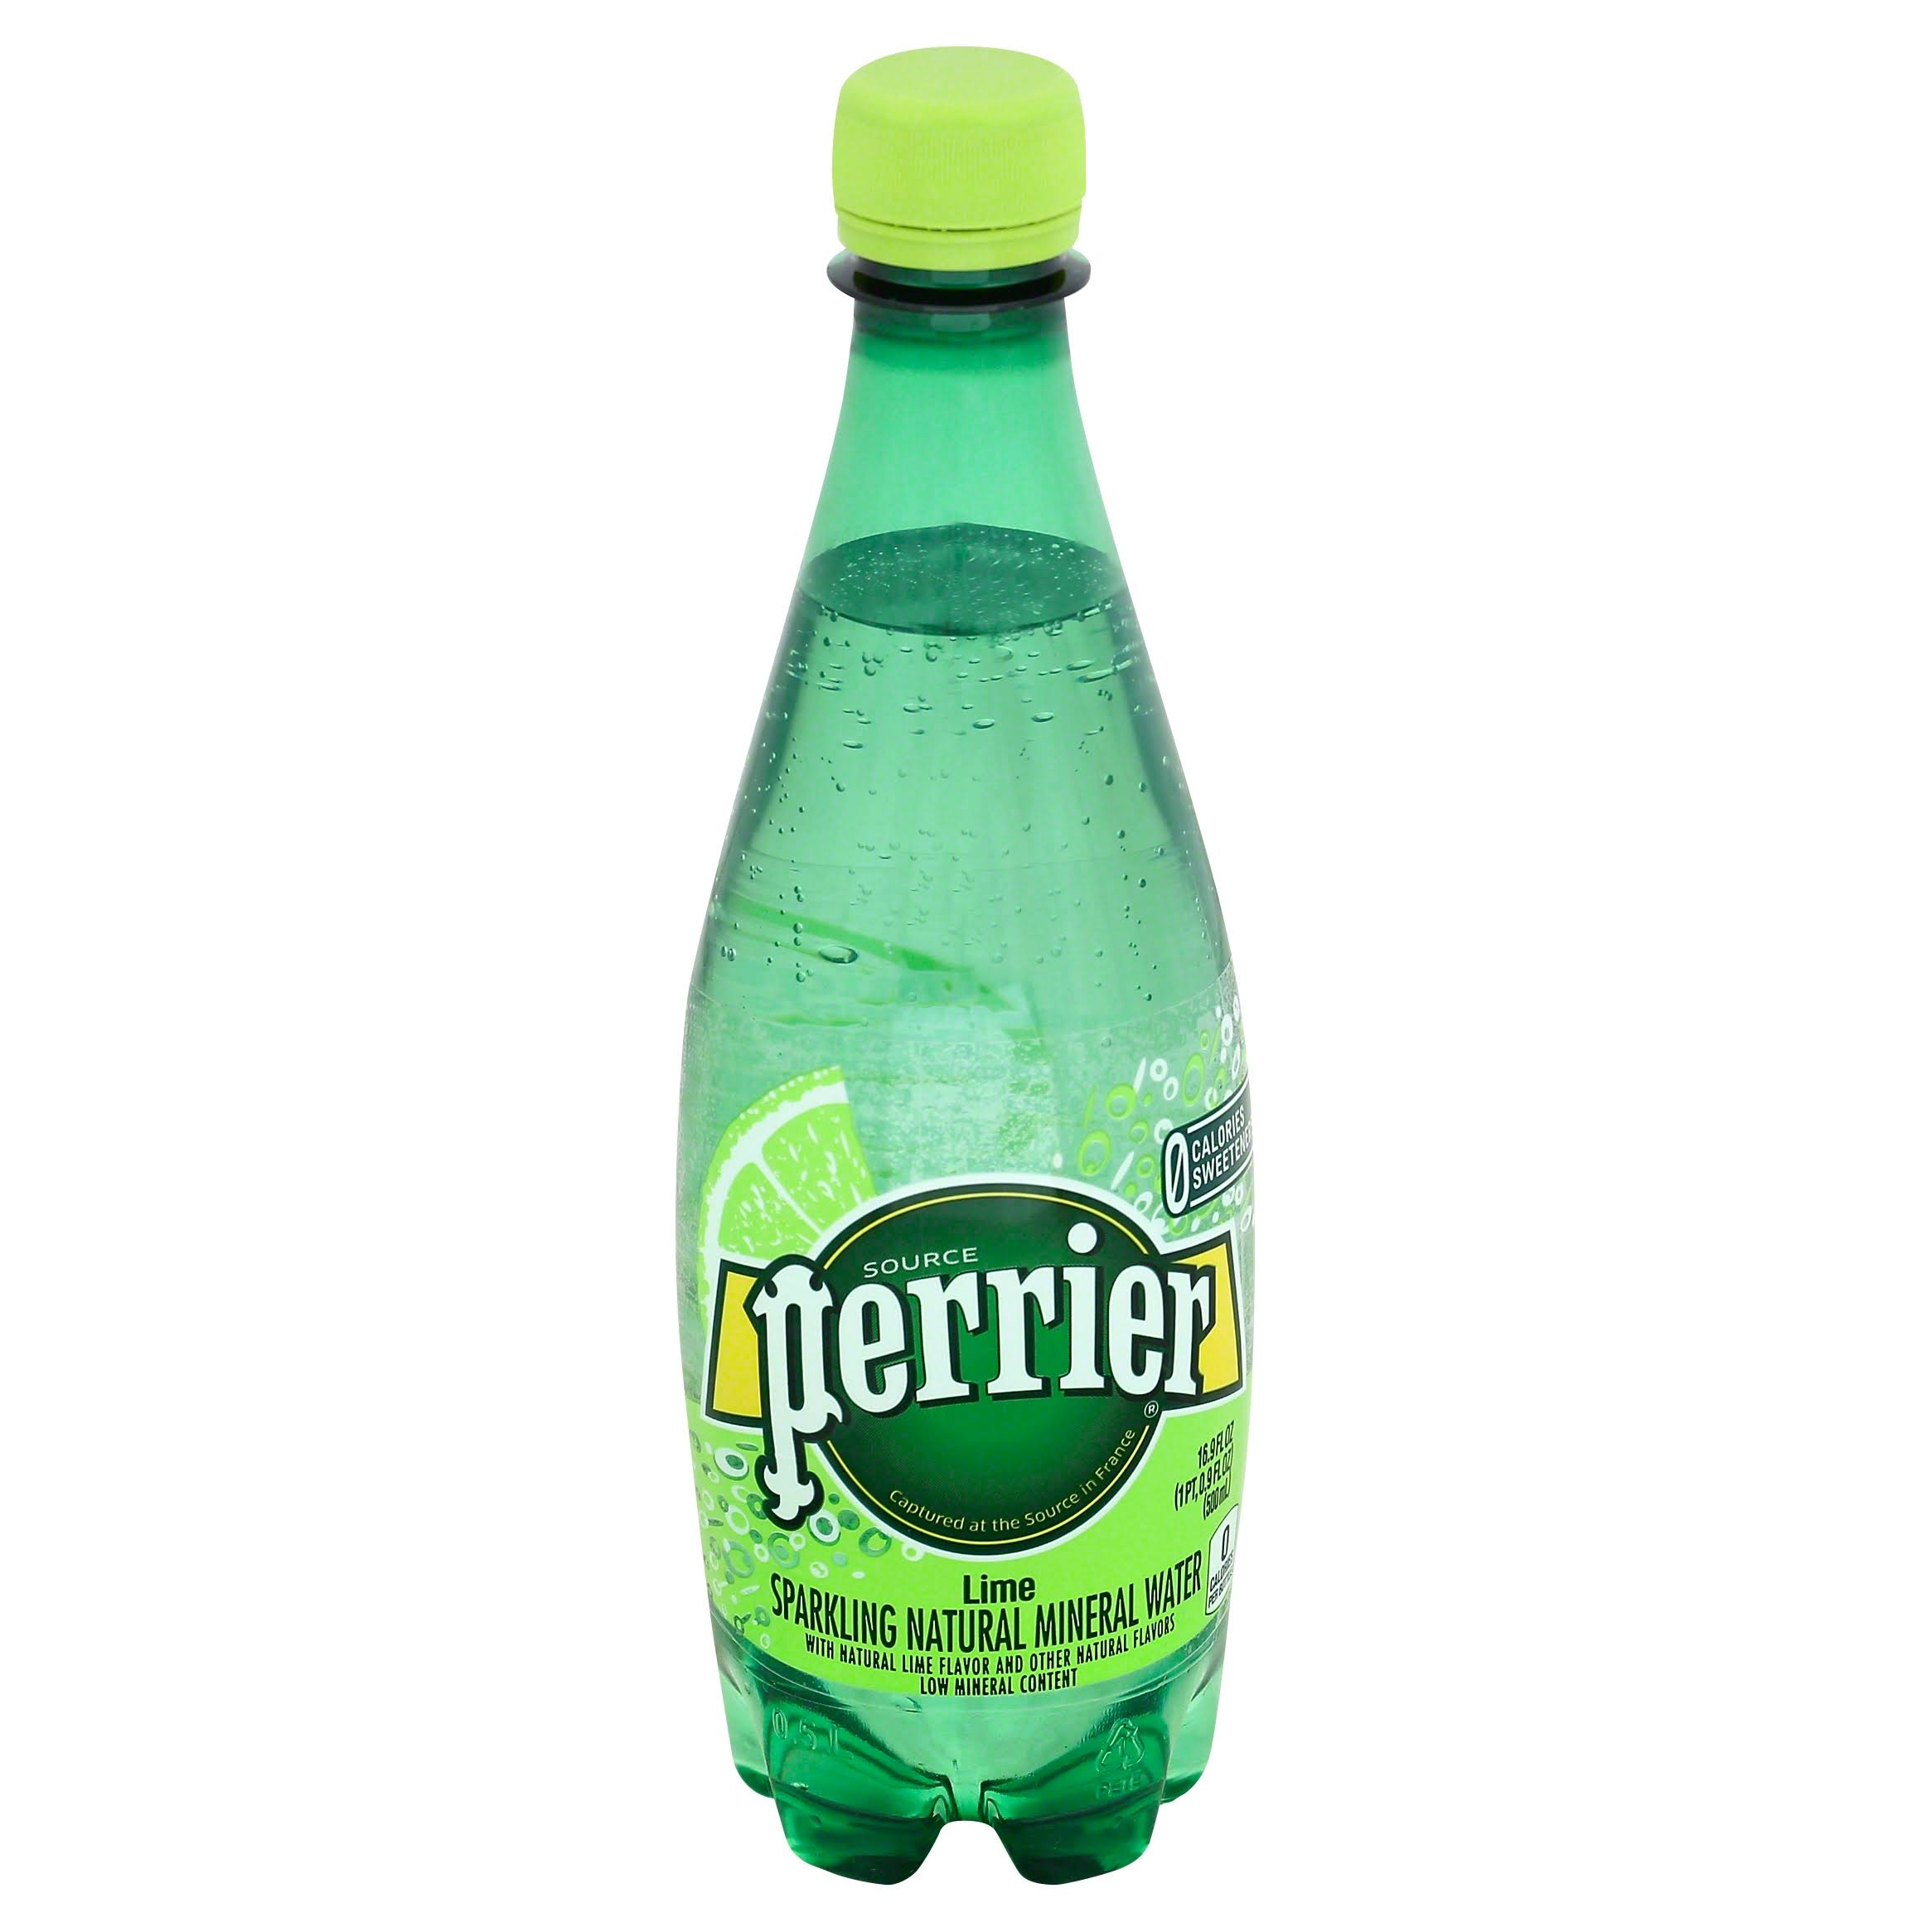 Perrier Sparkling Natural Mineral Water - Lemon Lime, 16.9oz